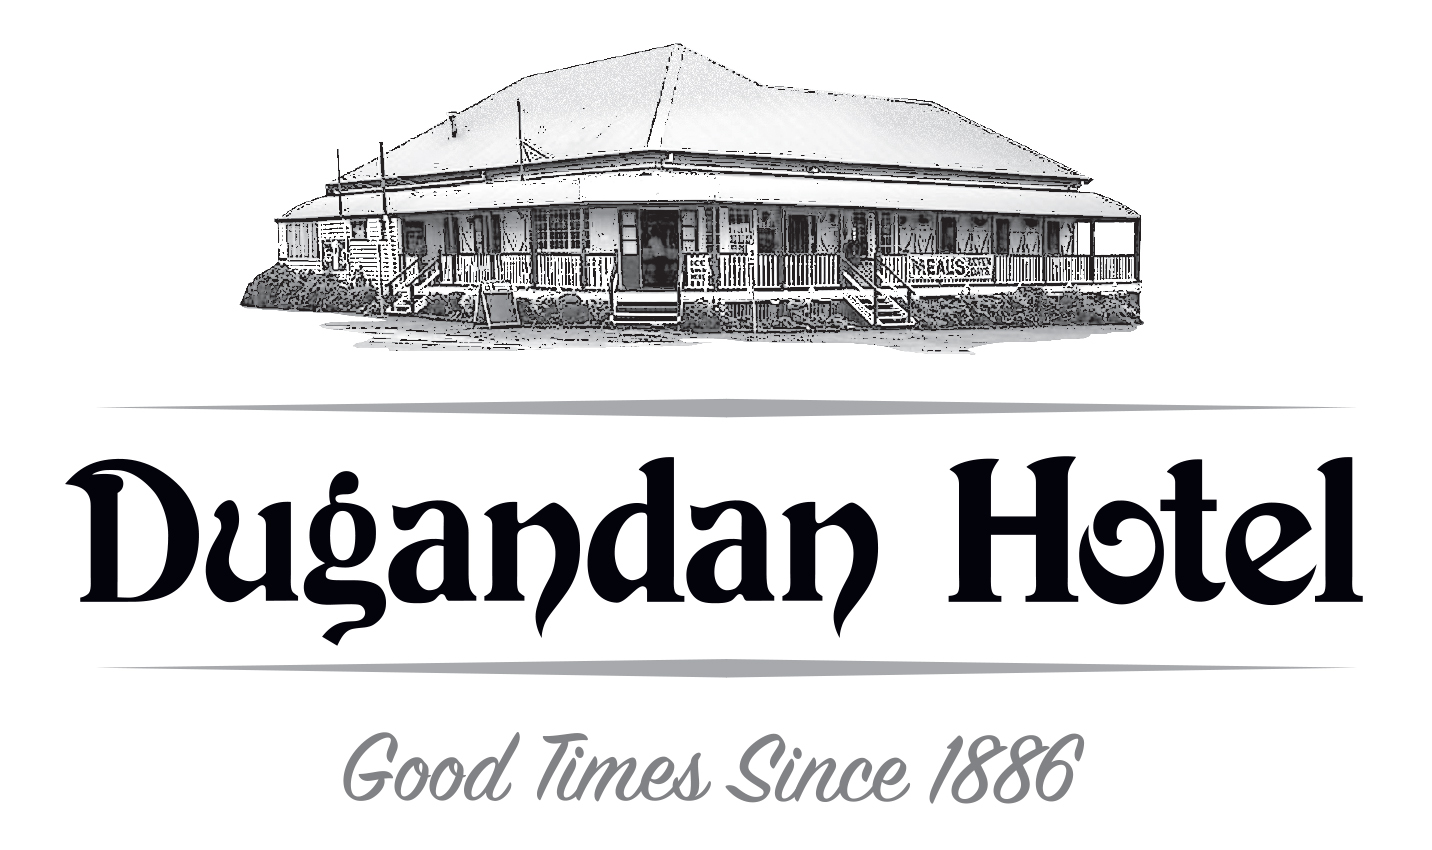 Dugandan Hotel - Perisher Accommodation